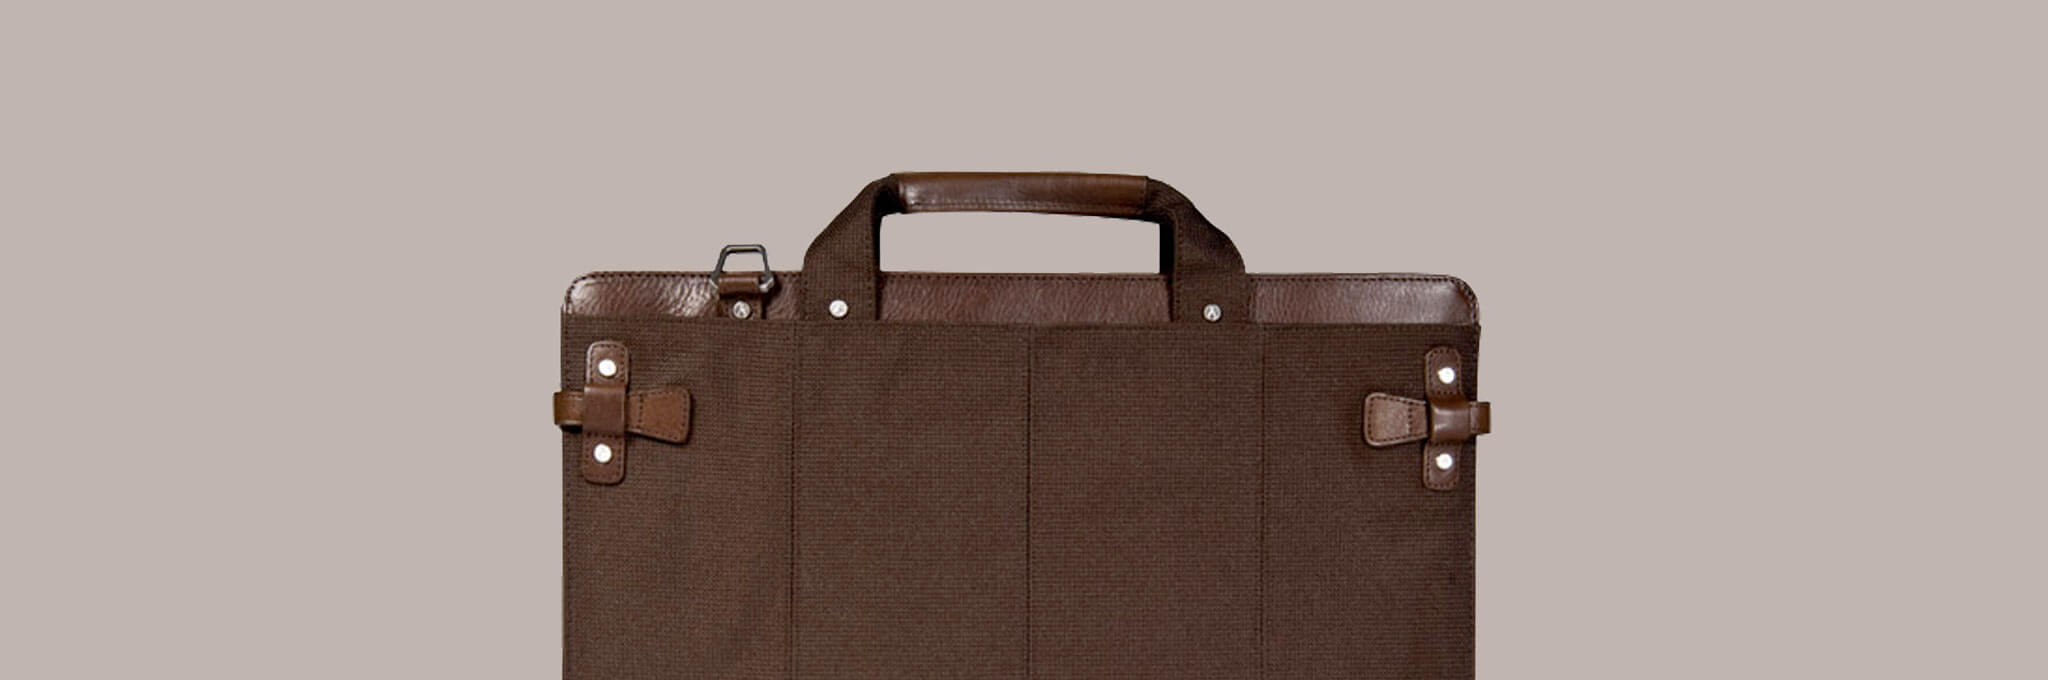 Top portion of brown briefcase on tan-gray background